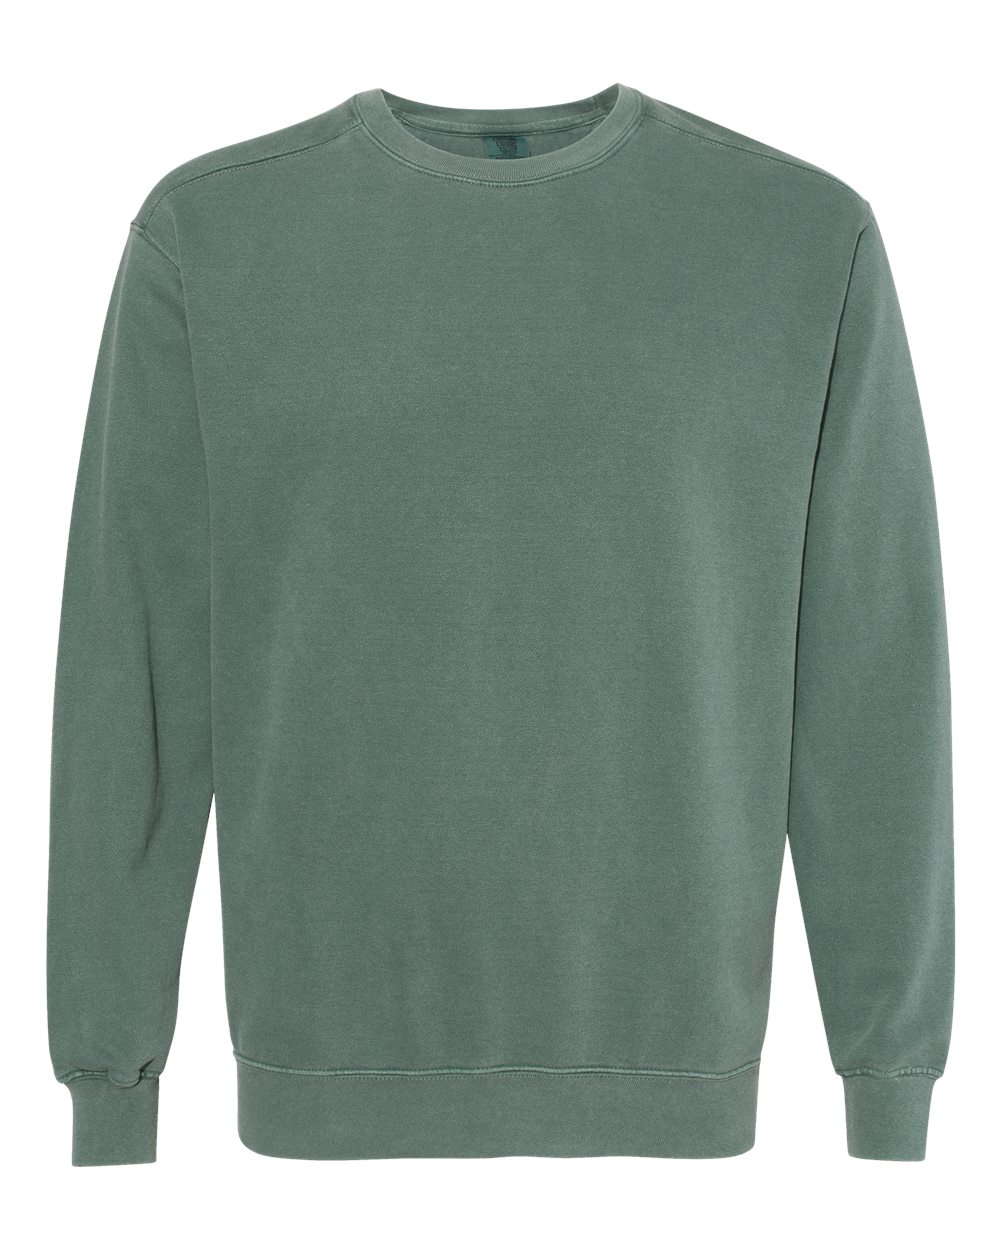 Comfort-Colors-Mens-Garment-Dyed-Ringspun-Crewneck-Sweatshirt-1566-up-to-3XL miniature 9